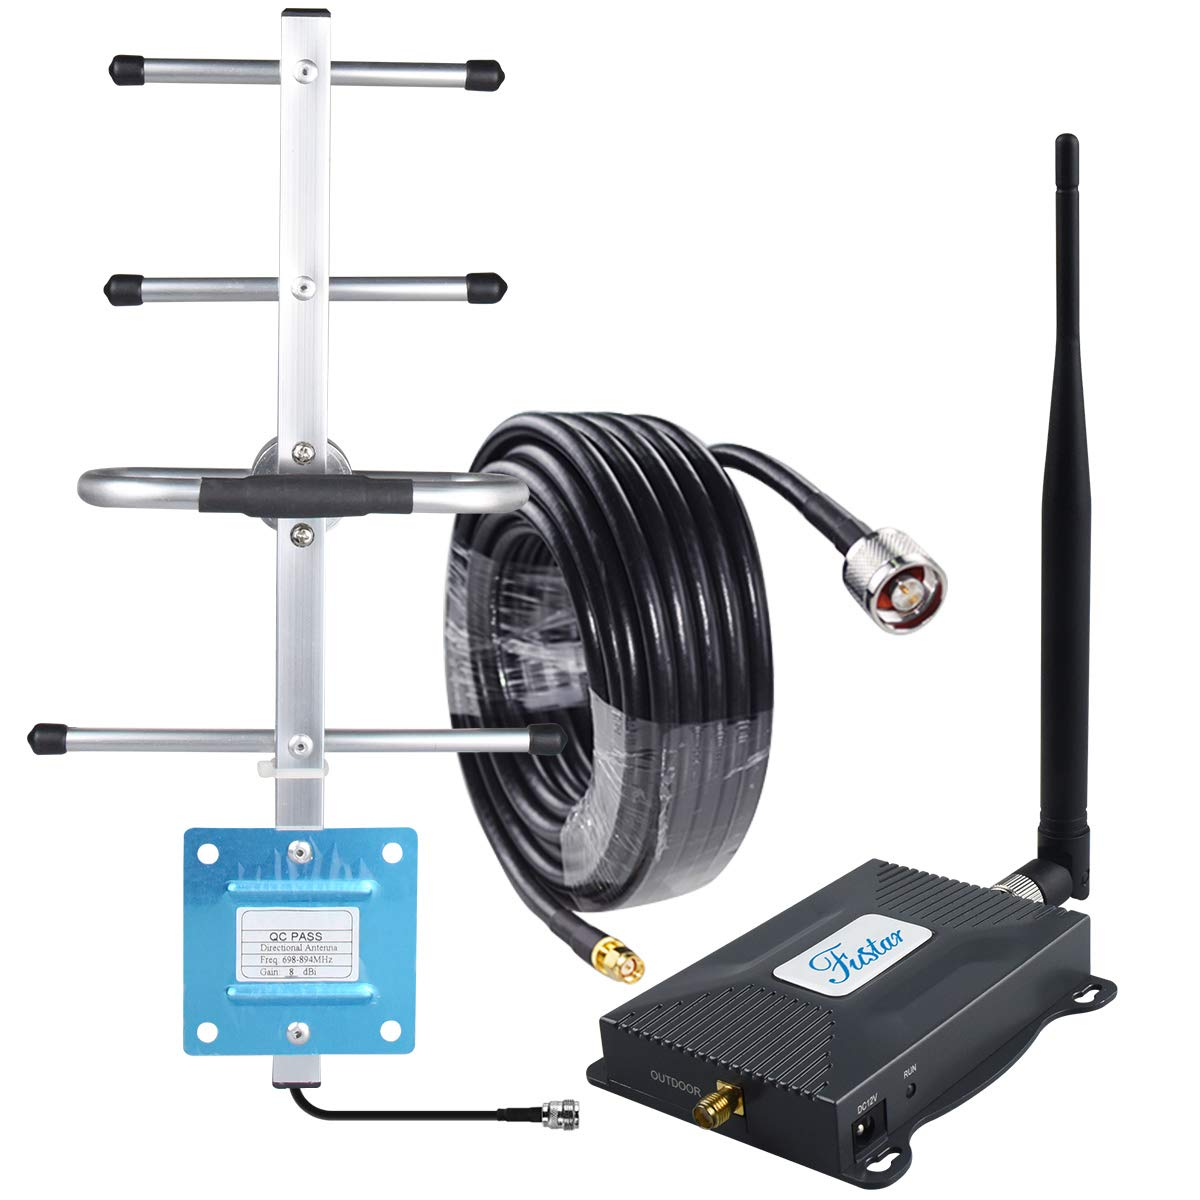 Cell Phone Signal Booster Verizon 4G LTE Signal Booster Band 13 Cell Phone Booster Verizon 4G LTE Network Extender Cell Booster Repeater Home 4G Booster Yagi Antenna Kit 65dB Boosts Voice/Data FUSTAR